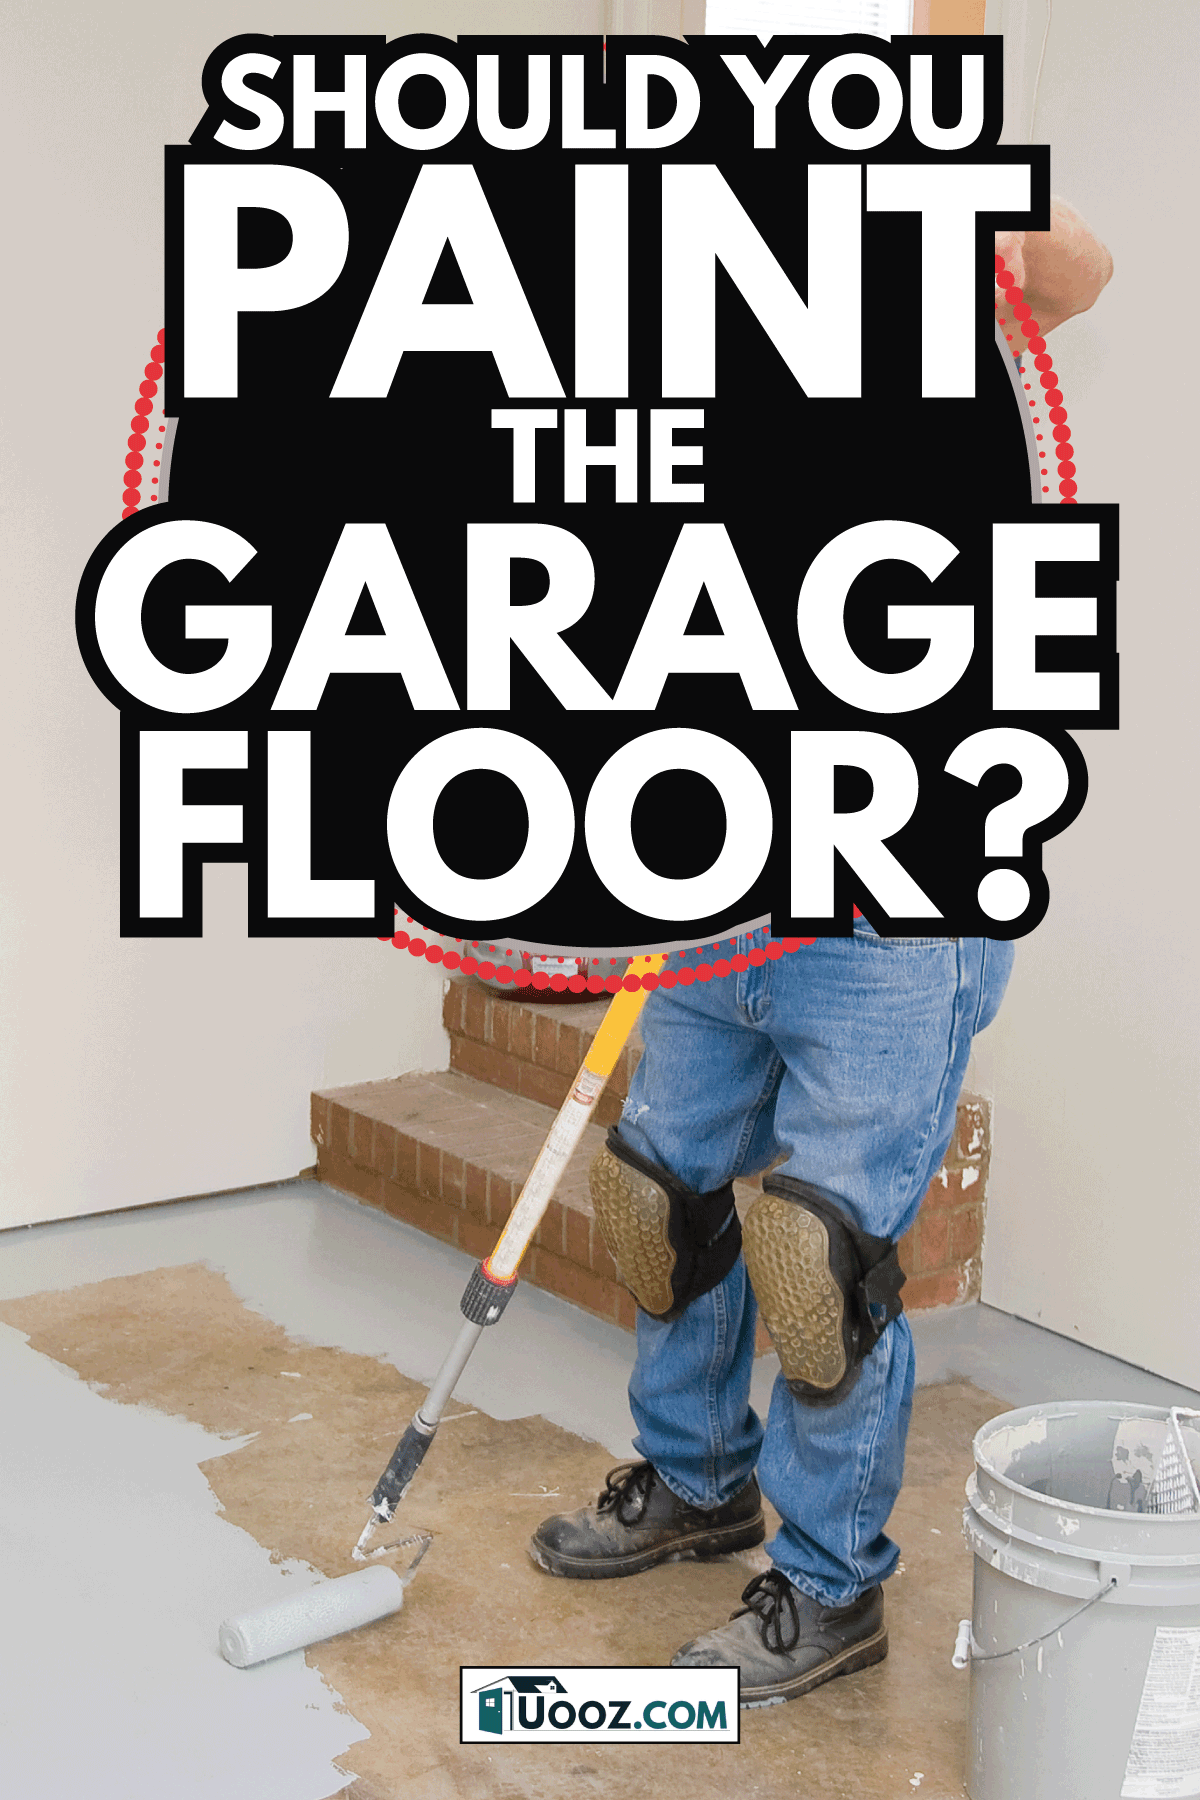 old man painting garage floor with gray paint using roller. Should You Paint The Garage Floor